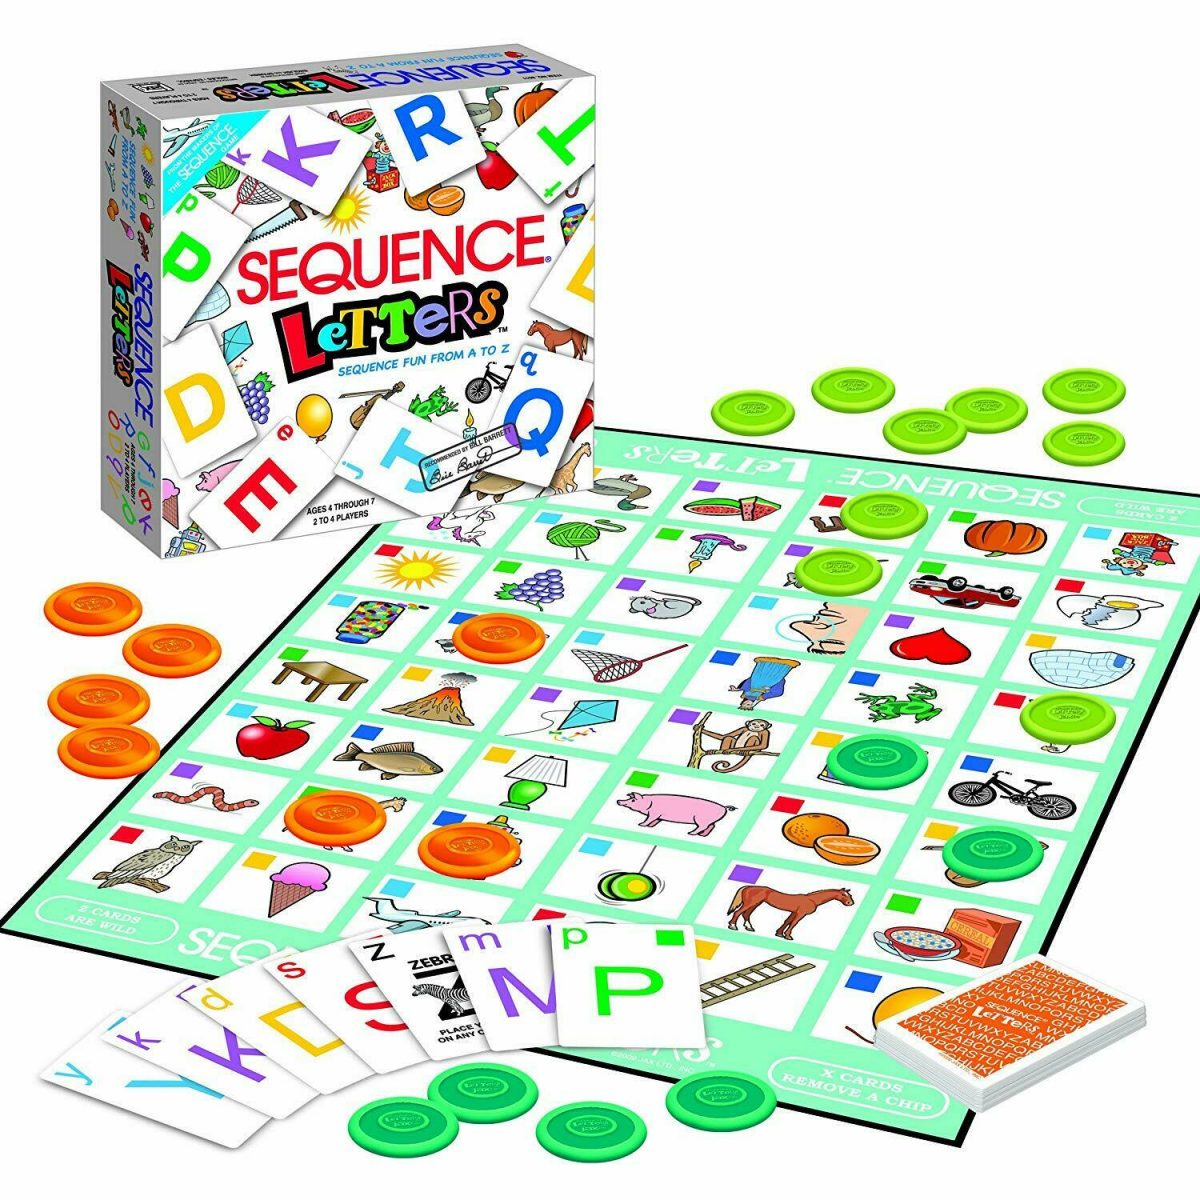 Sequence Letters Kids Educational Board Game Alphabet Learning for Age 4 5 6 7 1